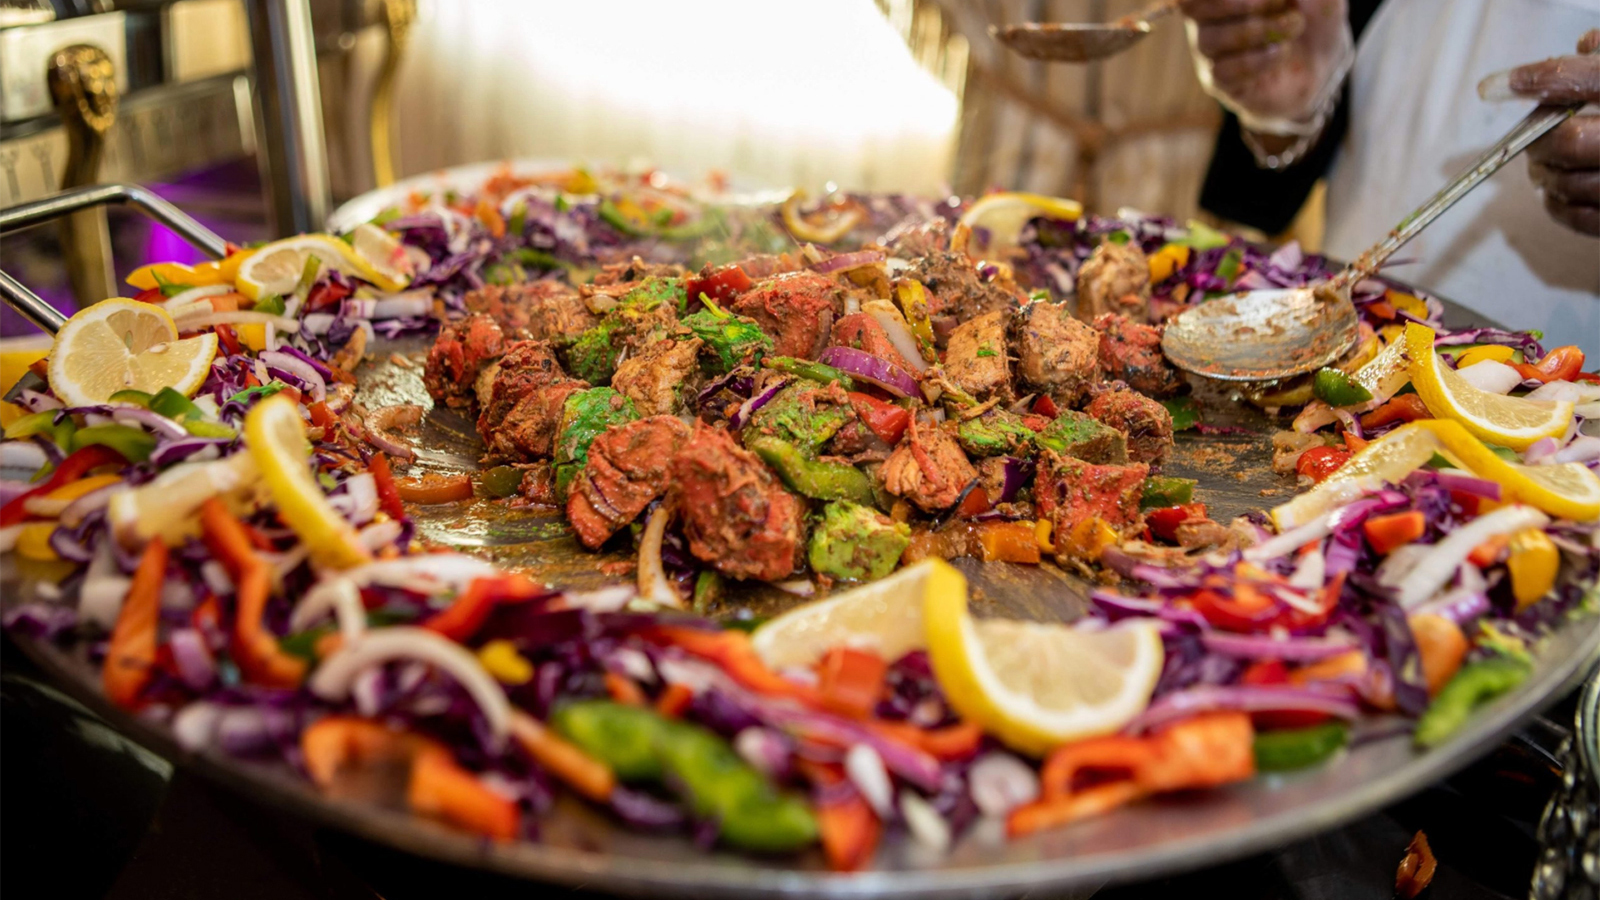 Best Indian Food In The United States Go To New Jersey Cnn Travel,Prime Rib Recipes Traeger